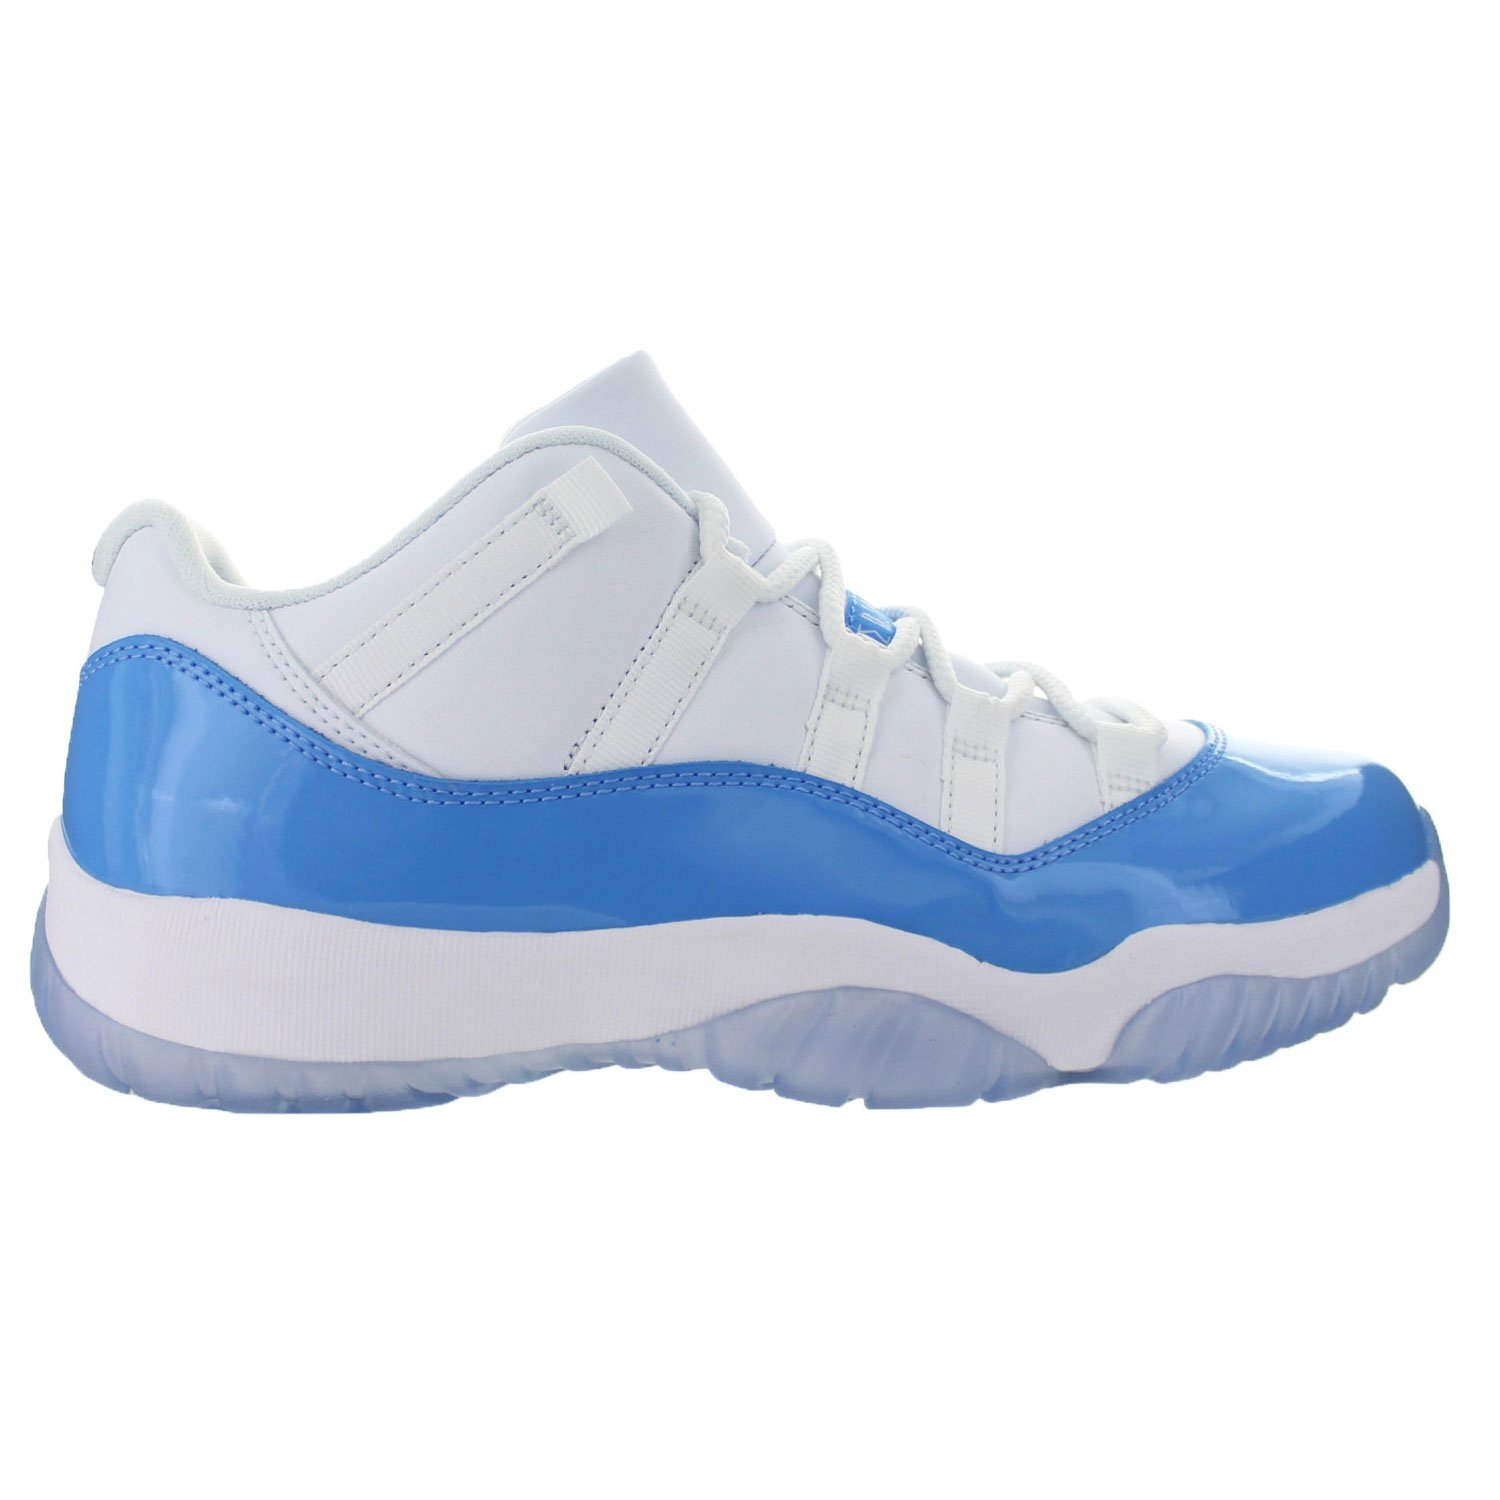 51f06834fe49ca ... Amazon.com Nike Mens Air Jordan 11 Retro Low WhiteUniversity Blue  Leather Size 13 Fashion ...